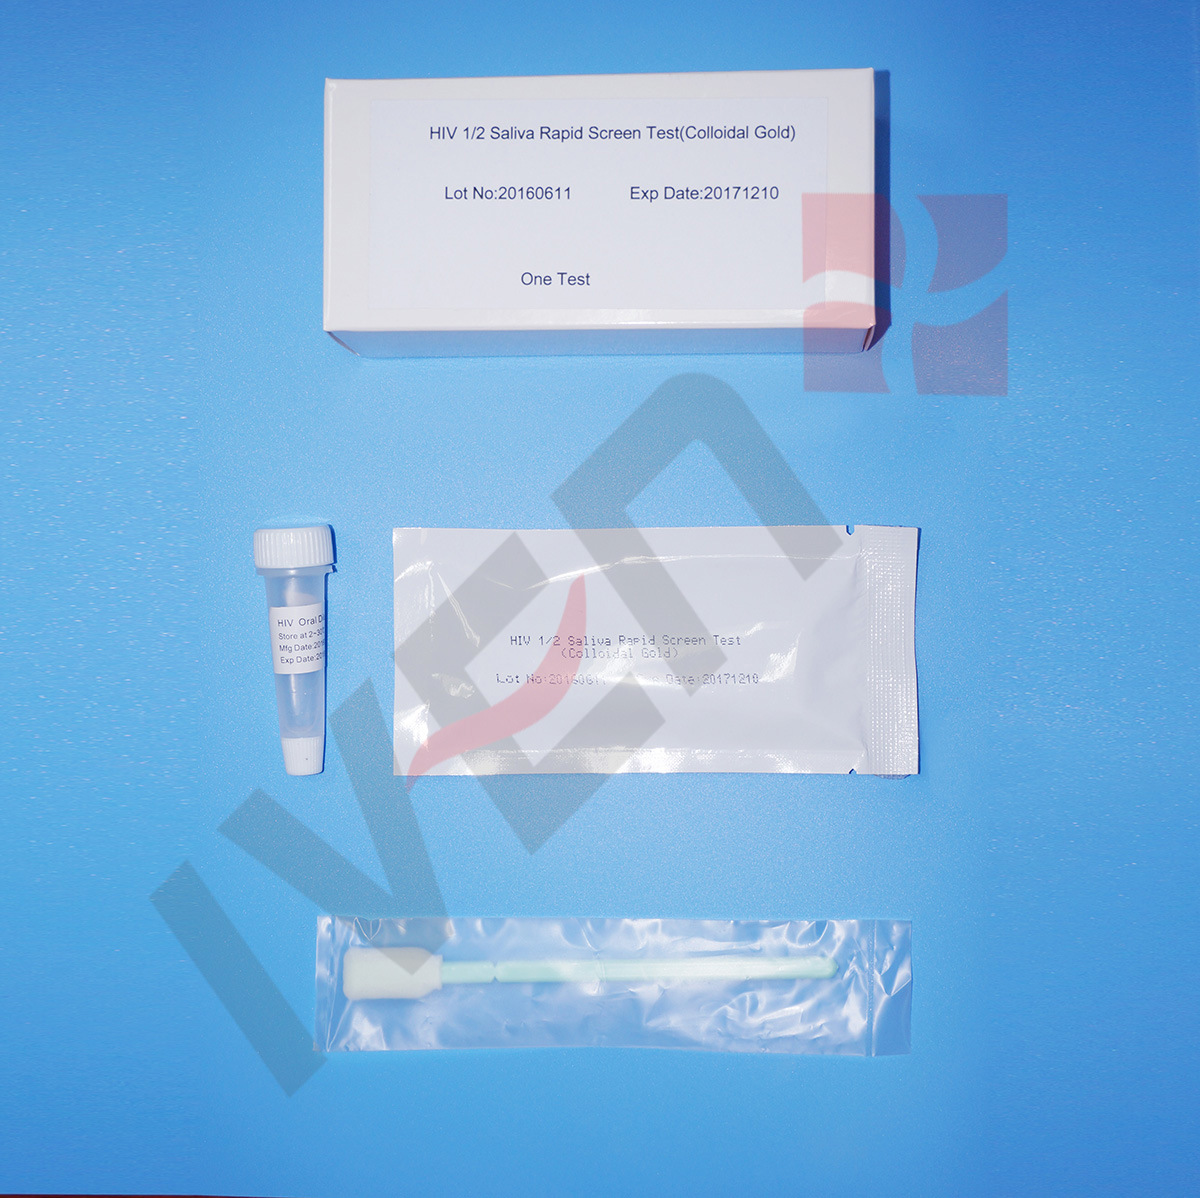 HIV Saliva One Step Test Kit